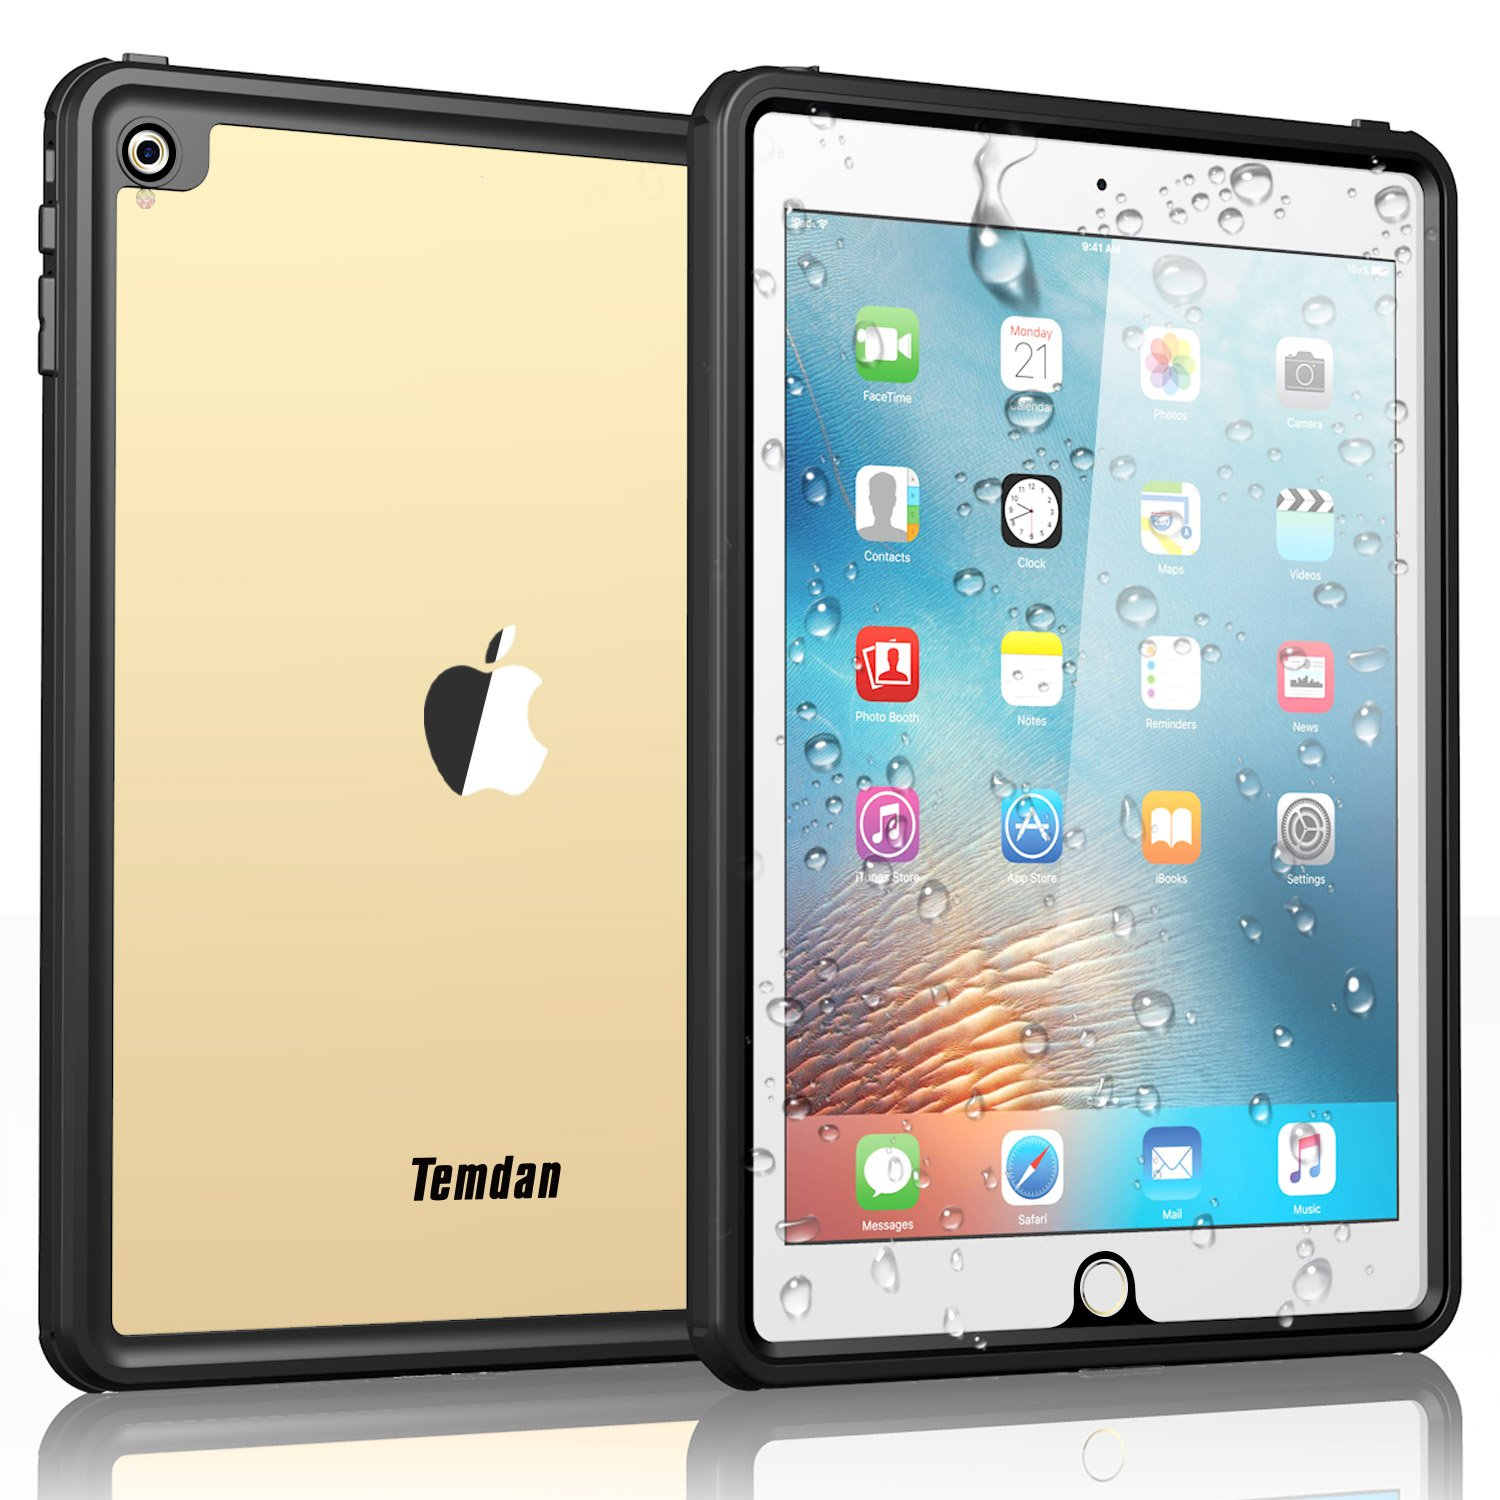 huge discount 2be7d 8b6f5 Temdan iPad Pro 9.7 Waterproof Case Rugged Sleek Transparent Cover with  Built in Screen Protector Waterproof Case for Apple iPad Air 2/iPad Pro 9.7  ...